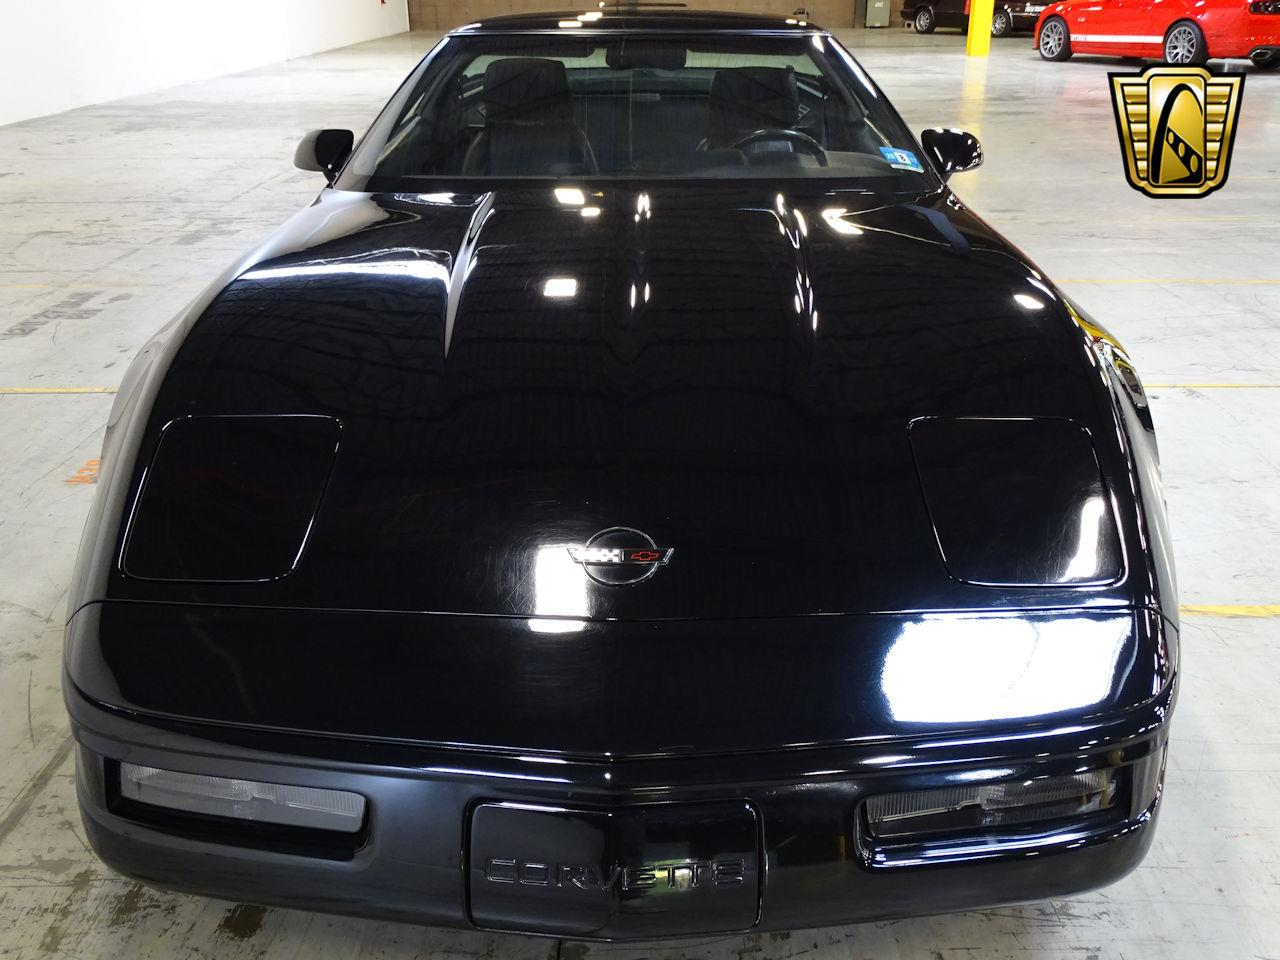 Large Picture of 1991 Corvette located in West Deptford New Jersey Offered by Gateway Classic Cars - Philadelphia - L1SC